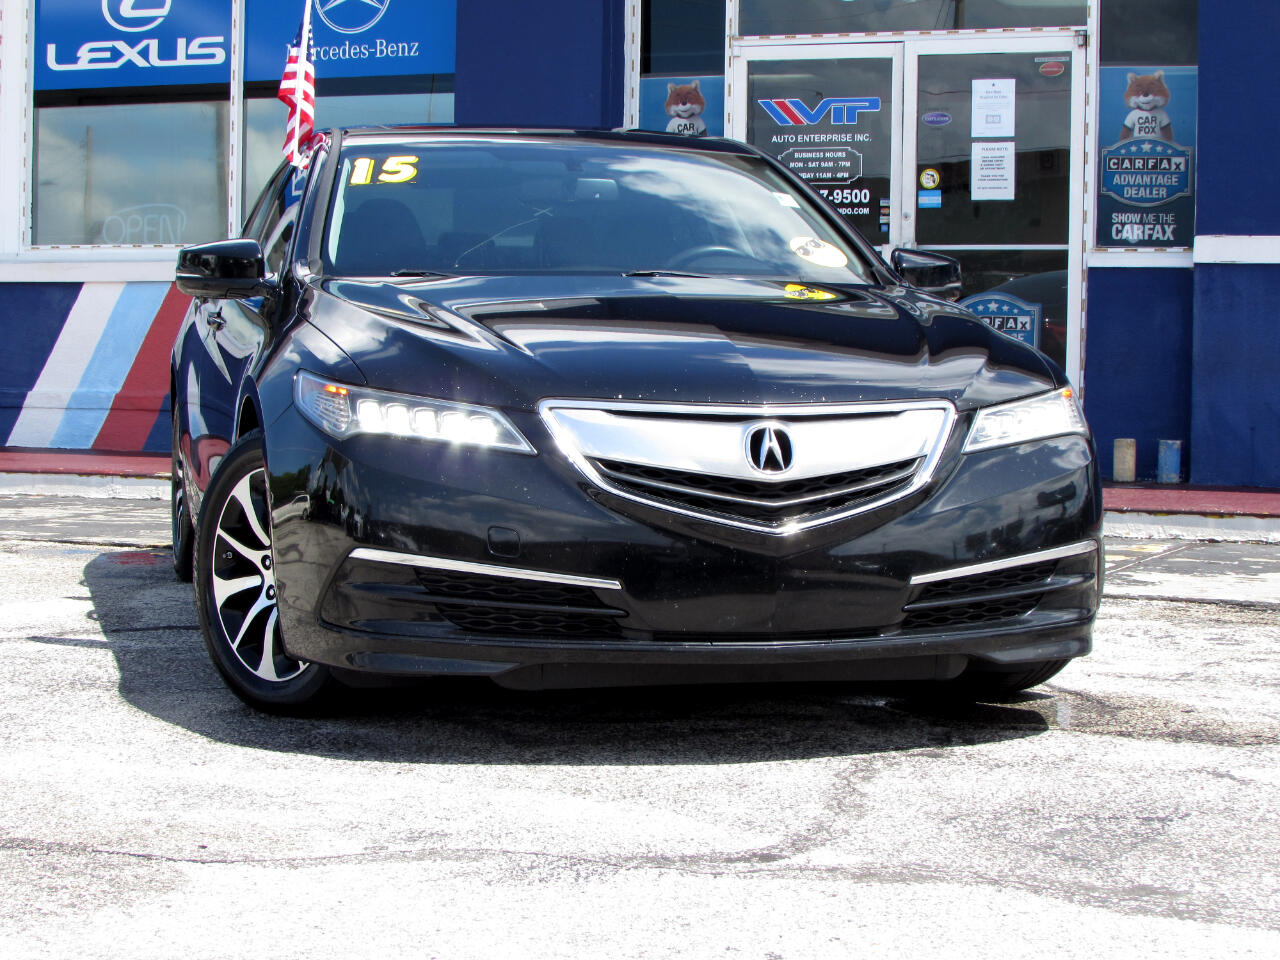 Acura TLX 4dr Sdn FWD 2015